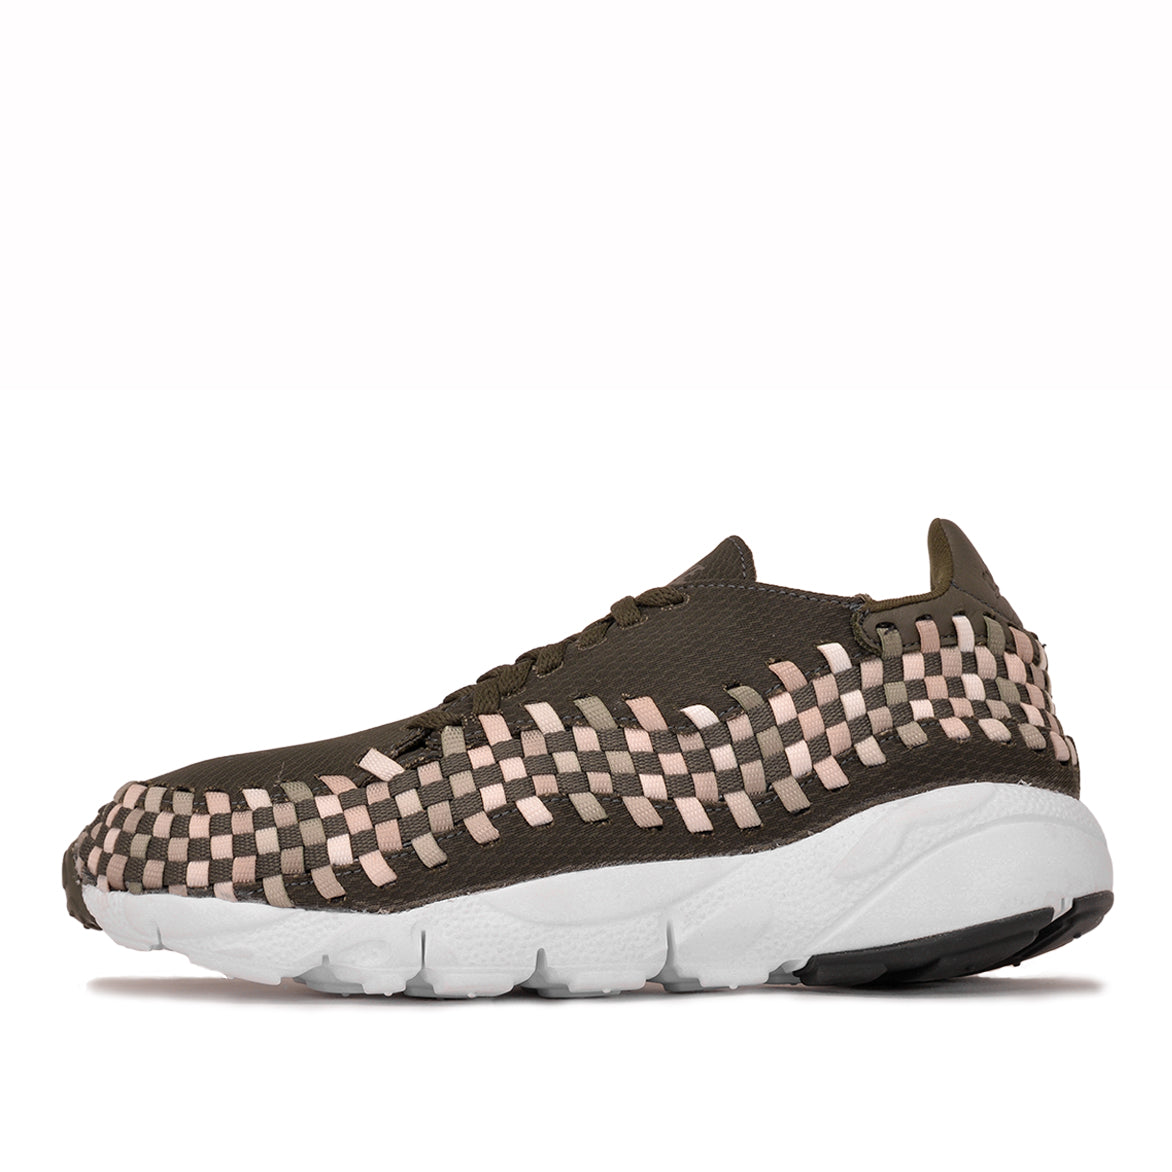 AIR FOOTSCAPE WOVEN NM - SEQUOIA